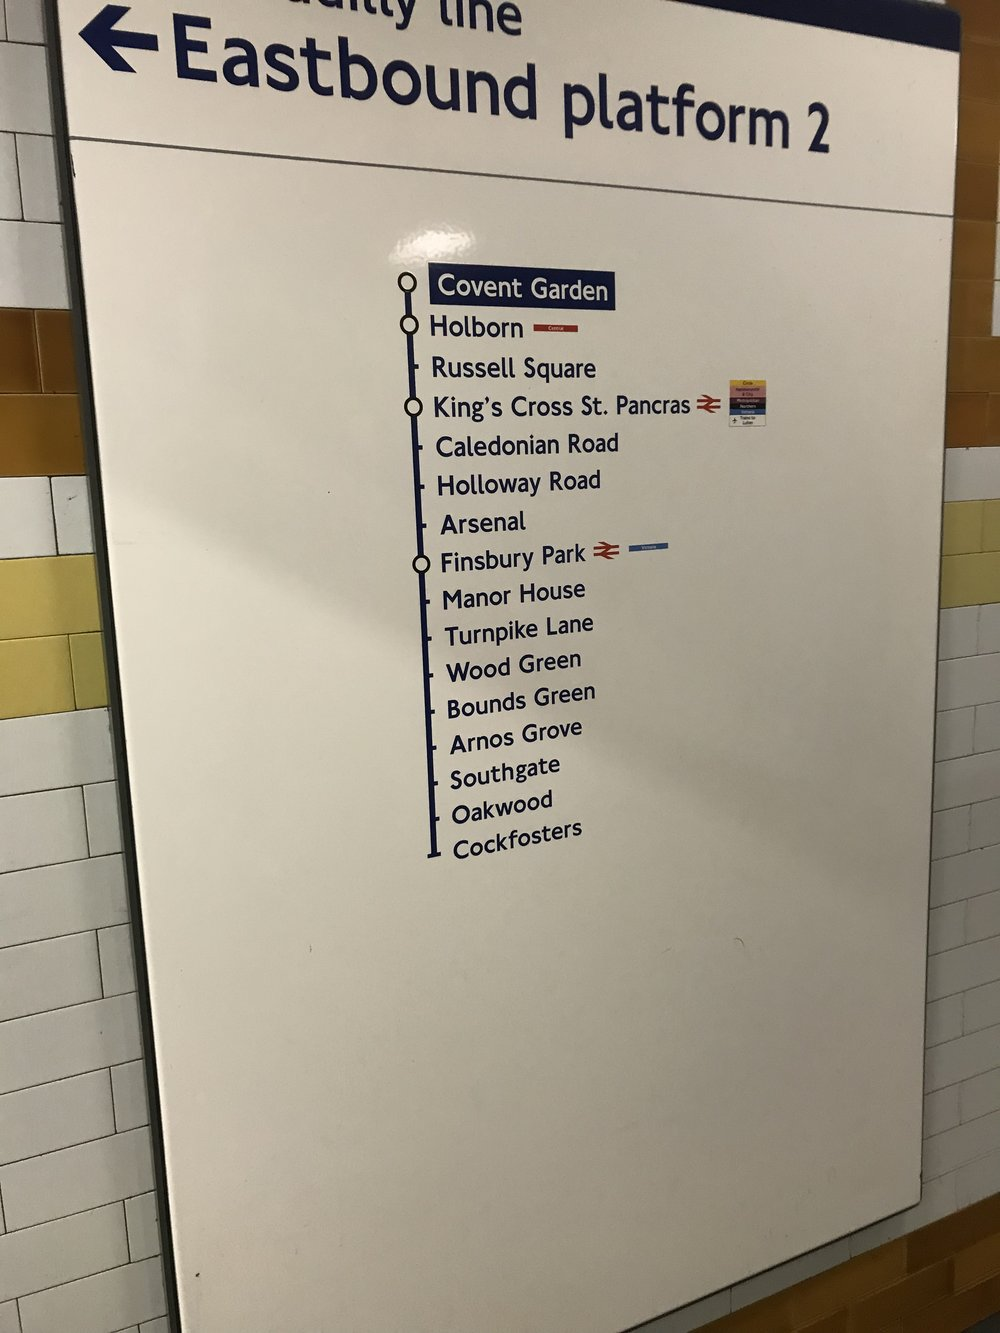 A photo of the list of tube stations Eastbound from Covent Garden on the Piccadilly Line